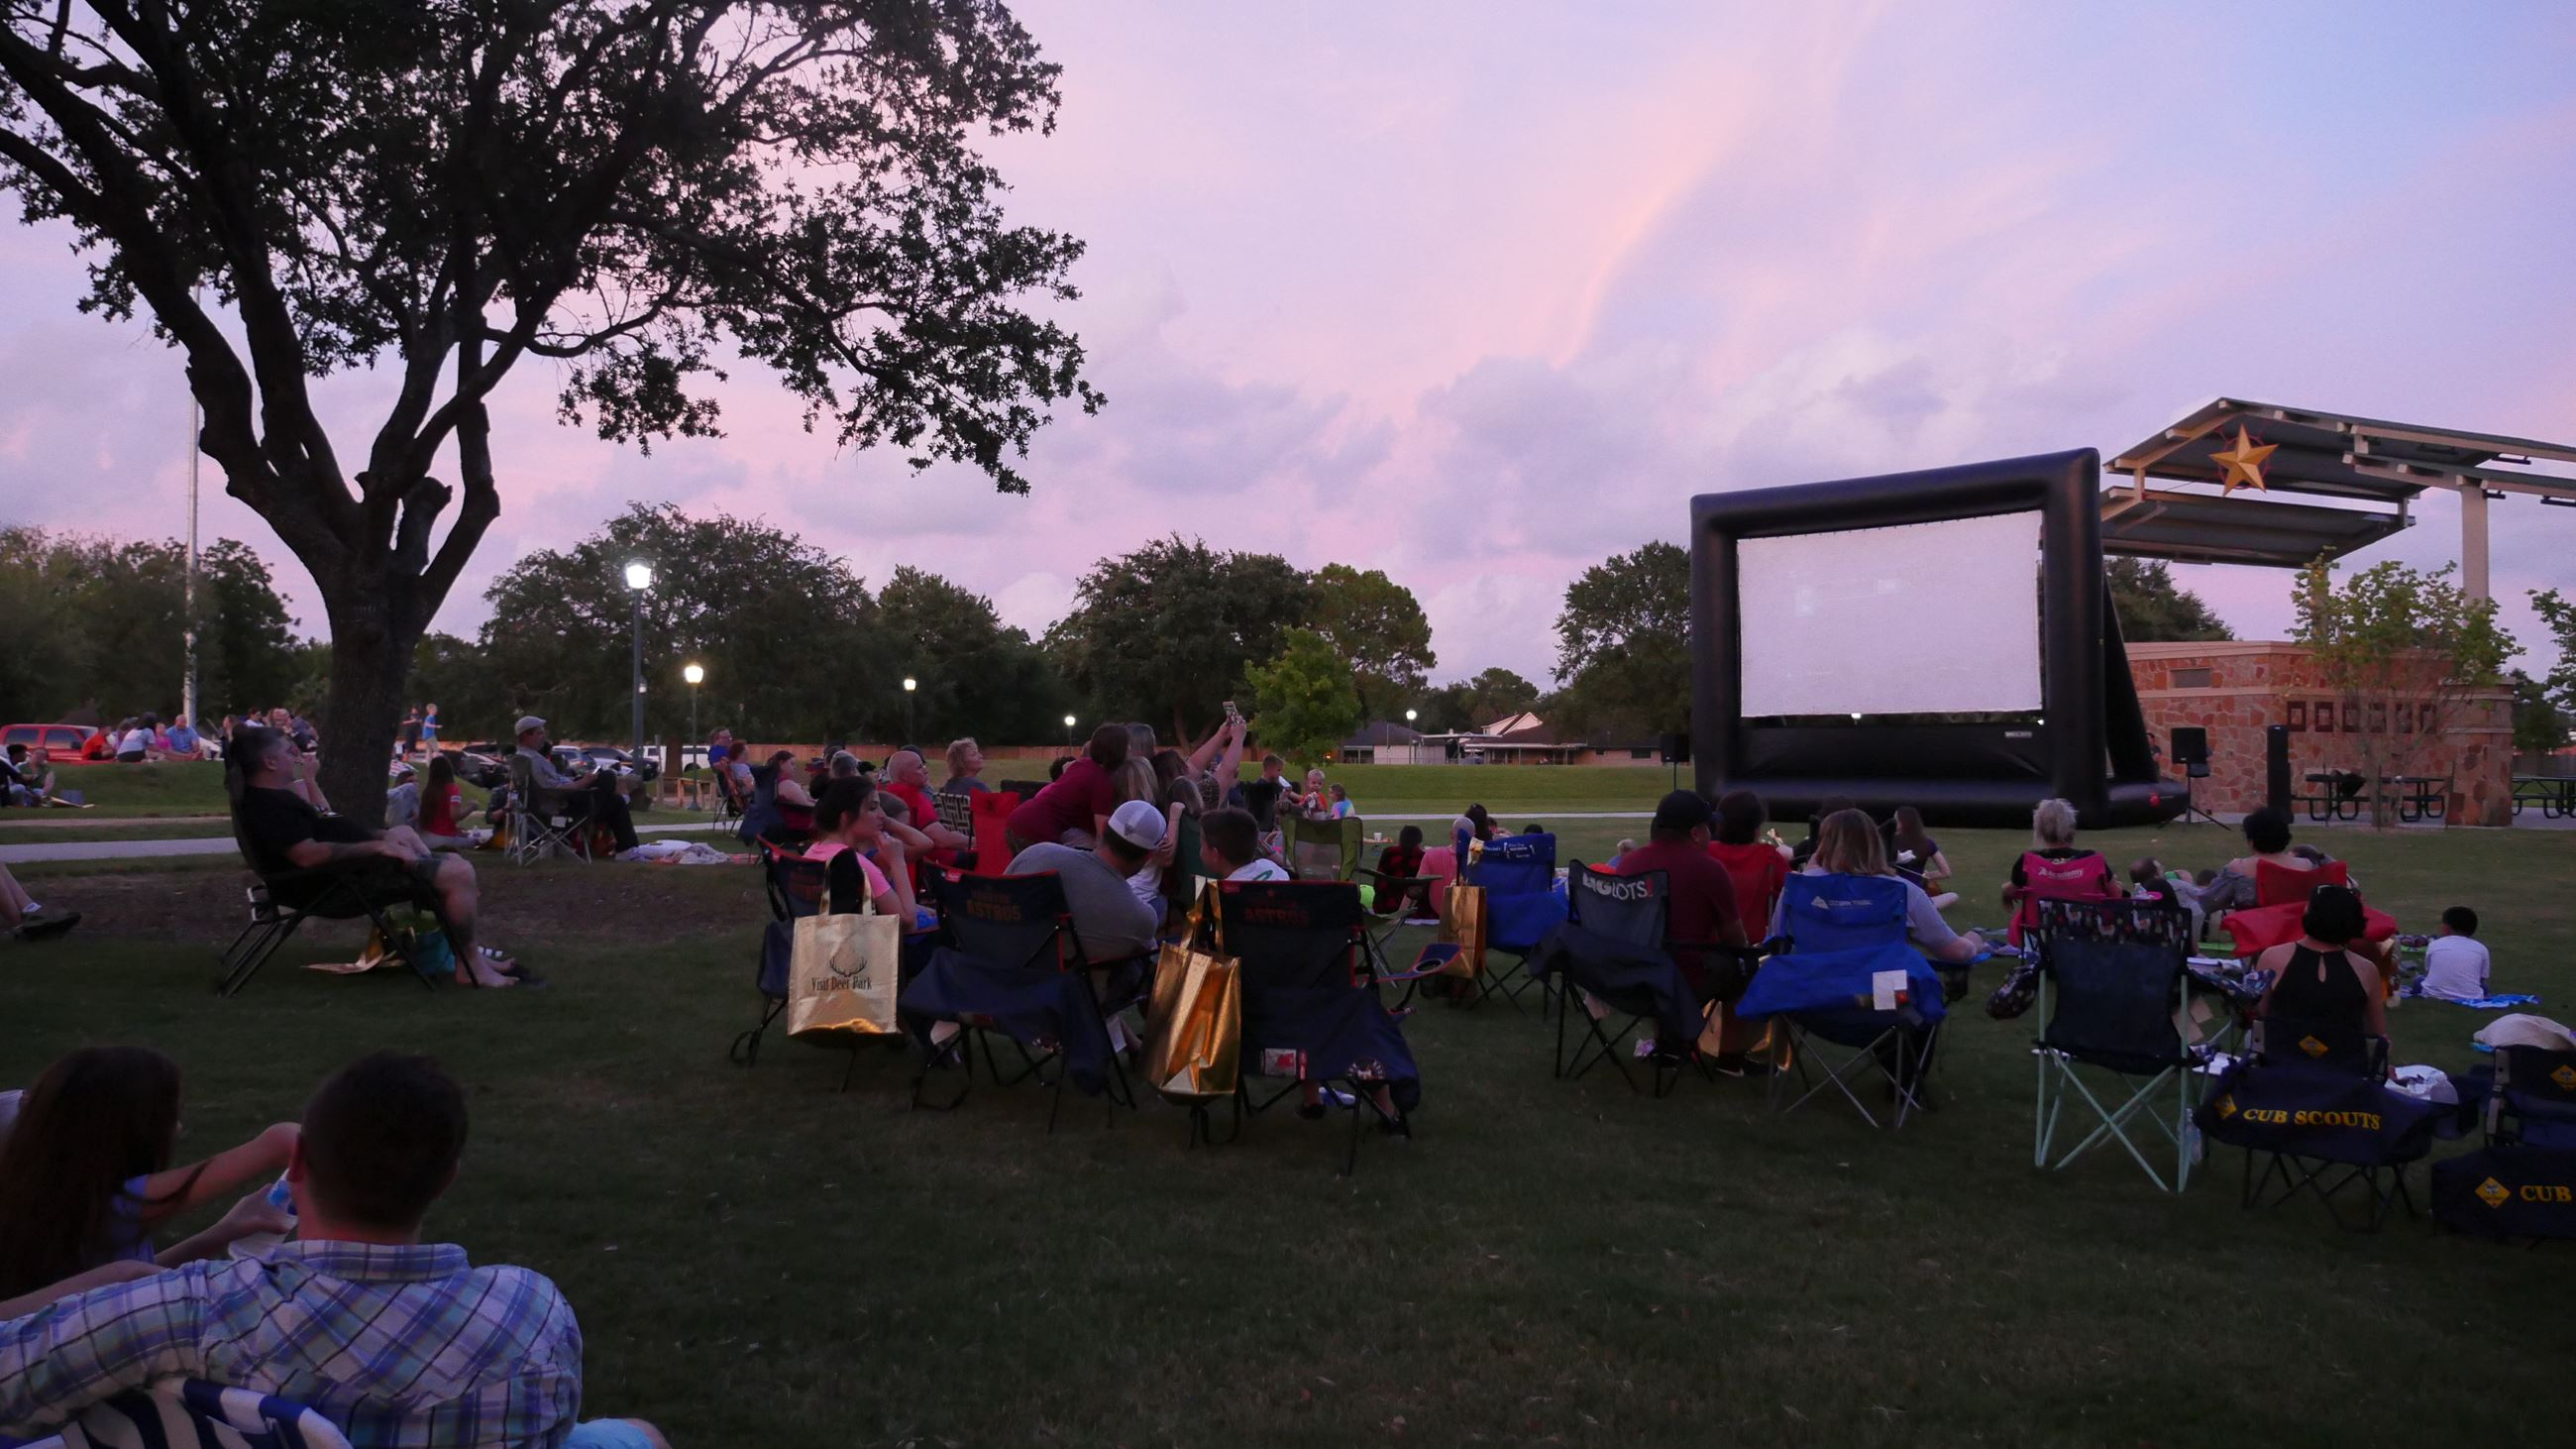 Movie screen with sunset behind it - families sitting on blankets outside watching movie